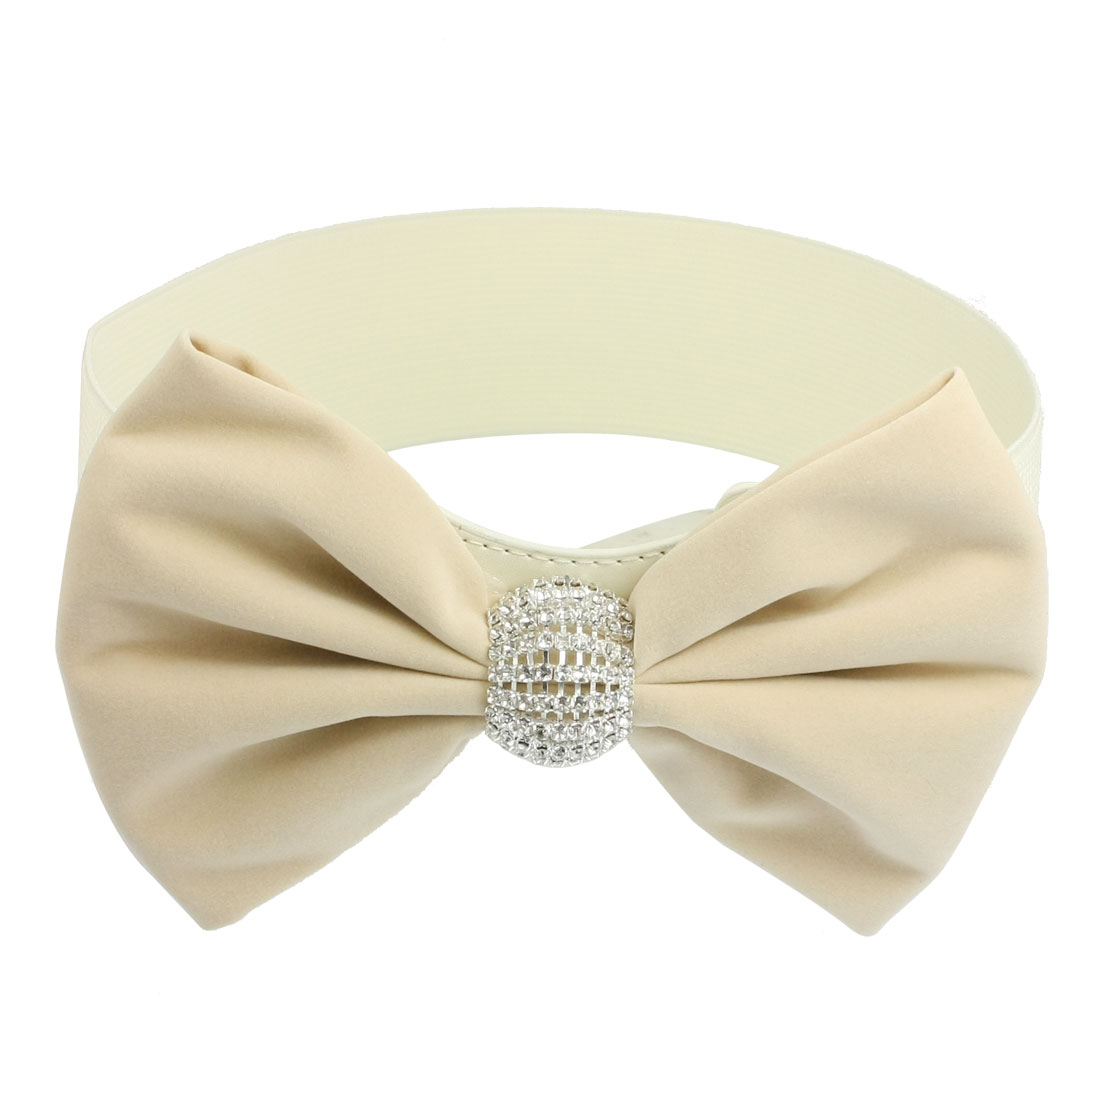 Rhinestone Decor Beige Bowknot Press Buckle Elastic Waistband Belt for Women